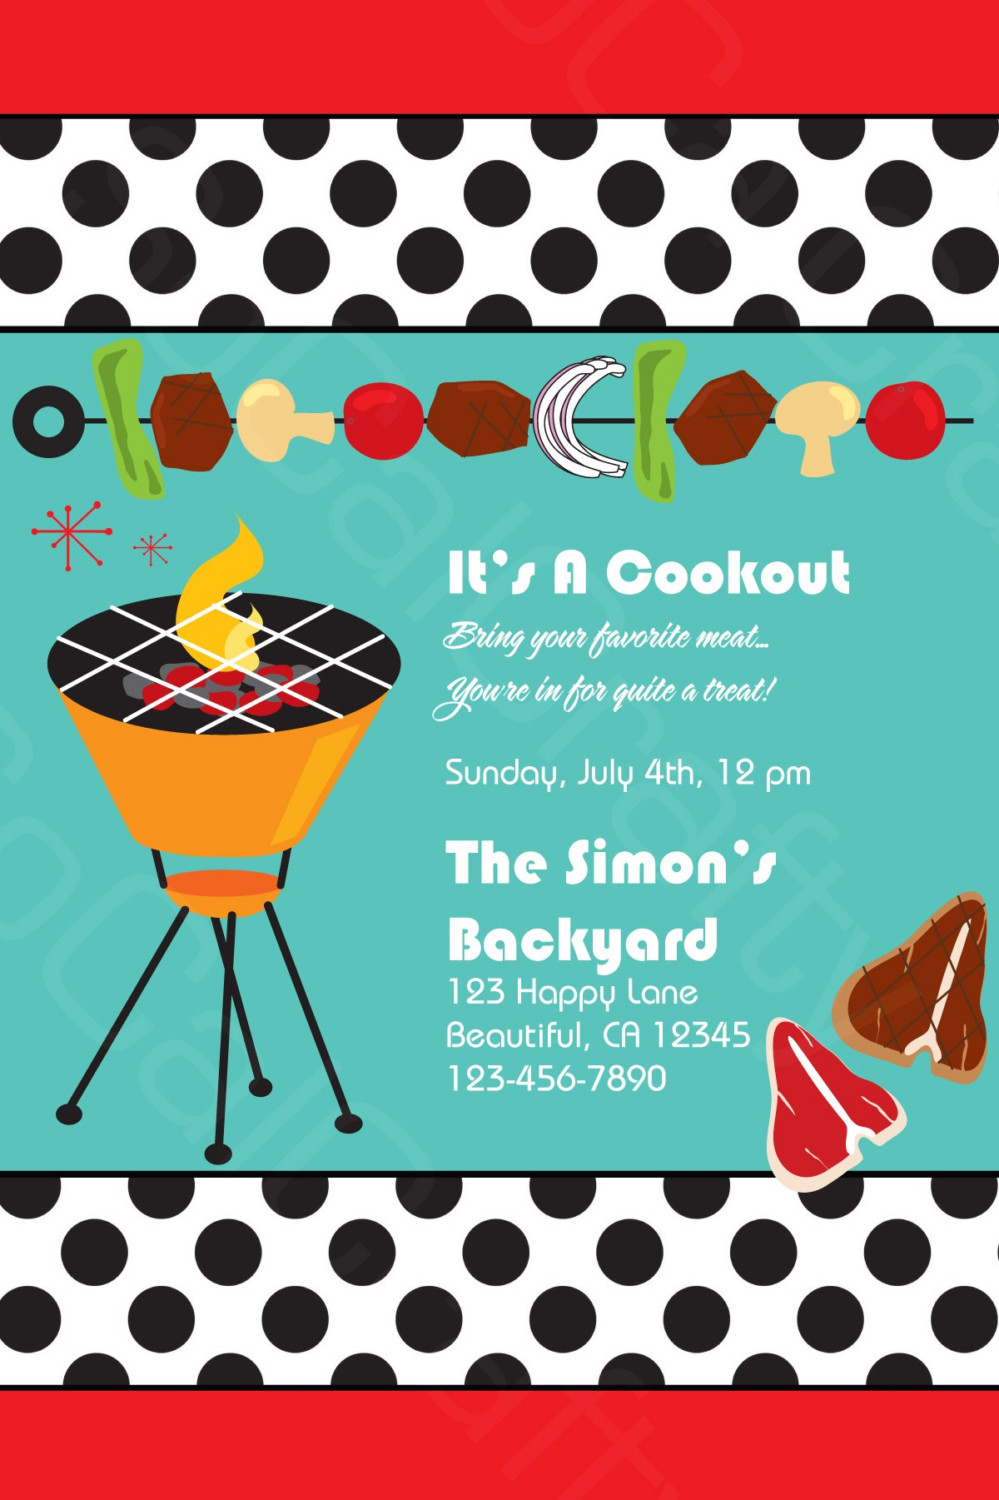 Barbecue clipart family gathering Reunion Family Clipart Free Invitations